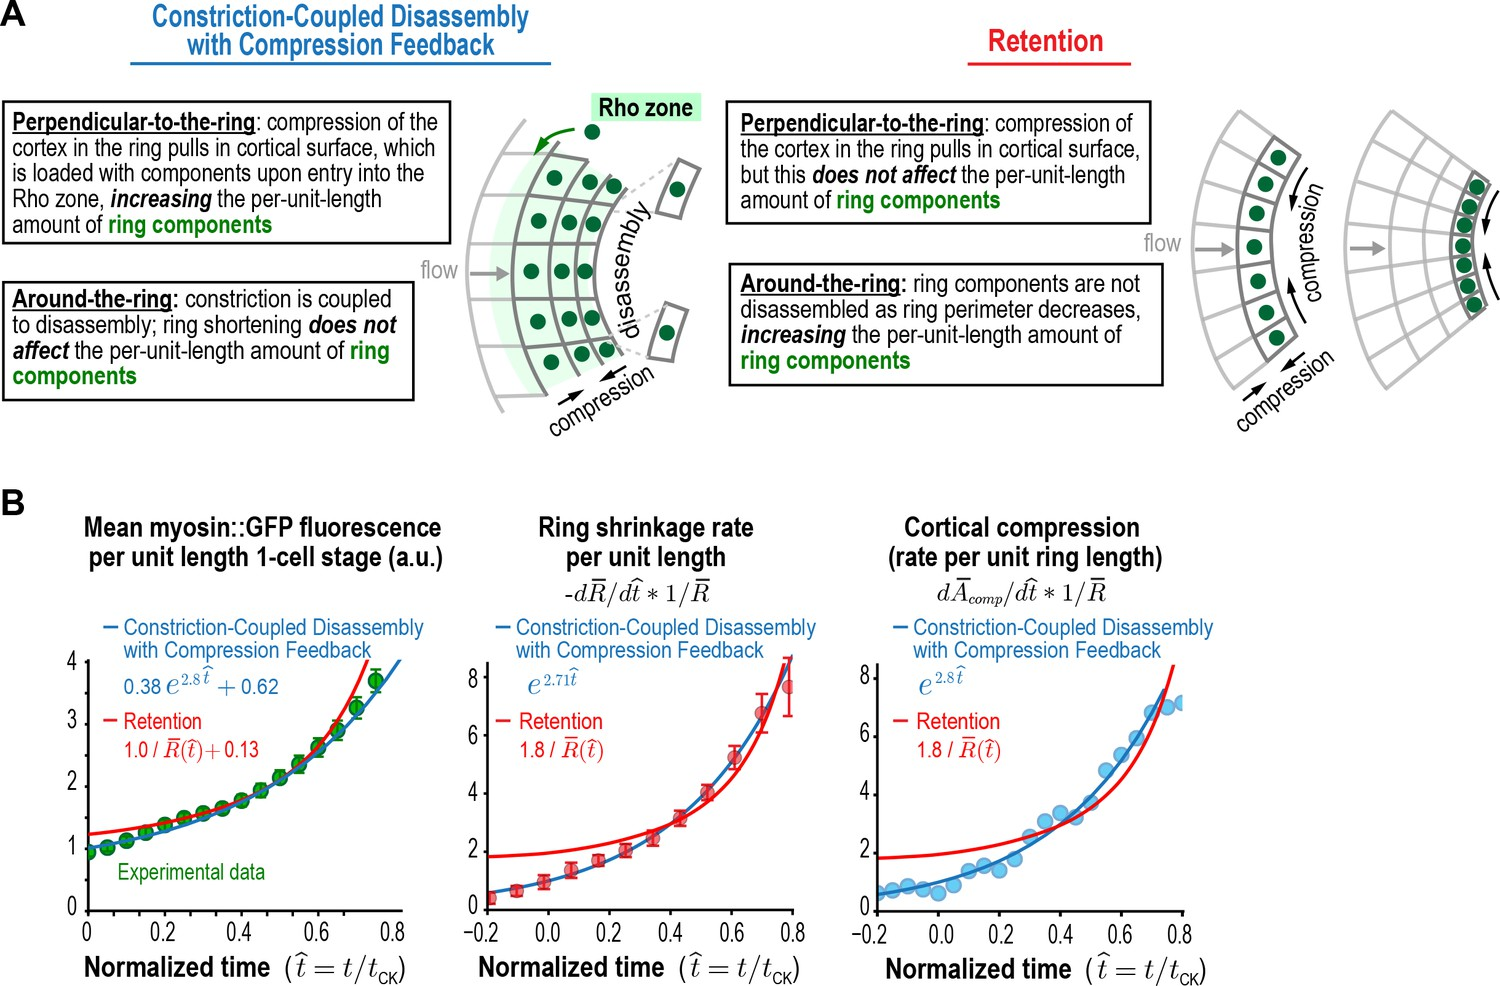 5eddfb871d Myosin accumulation and the rates of ring constriction and cortical  compression can be approximated with a retention model but are fit better  by the ...